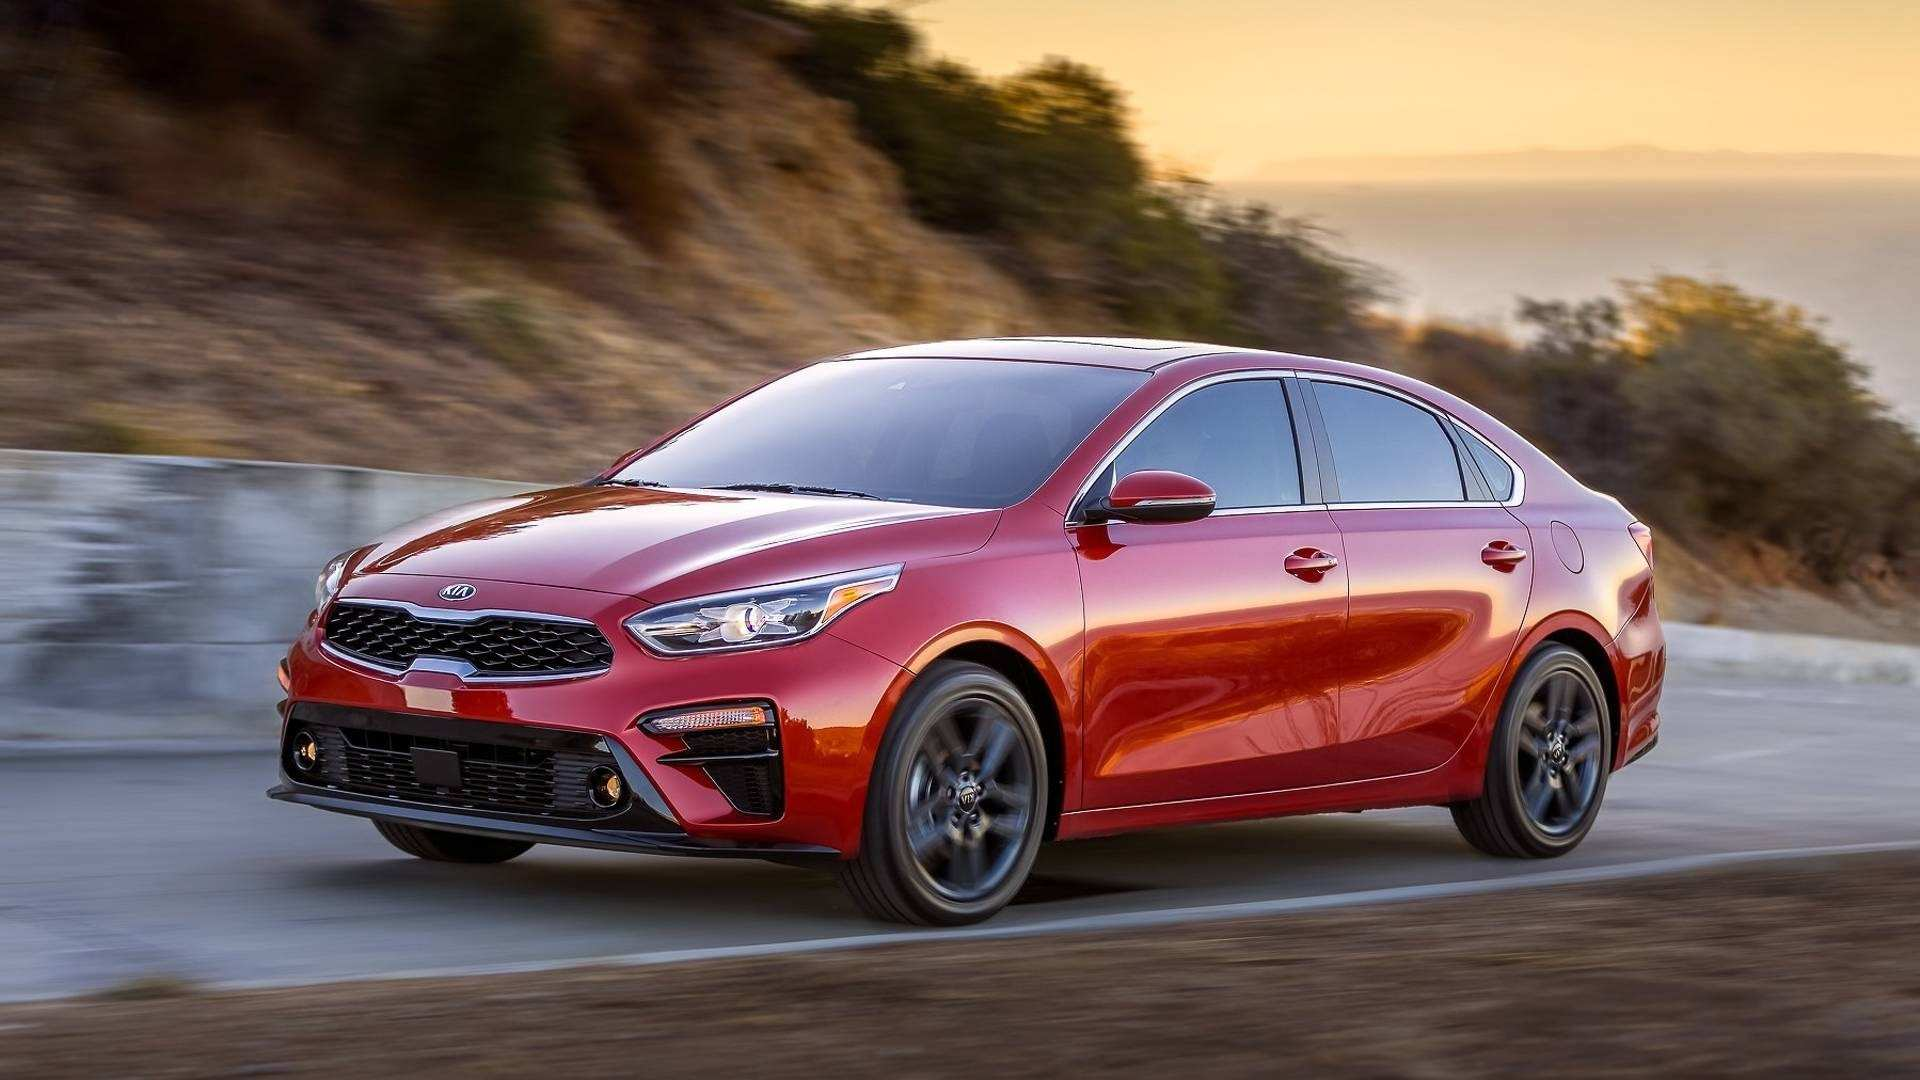 56 A 2019 Kia Carens Egypt Redesign And Review